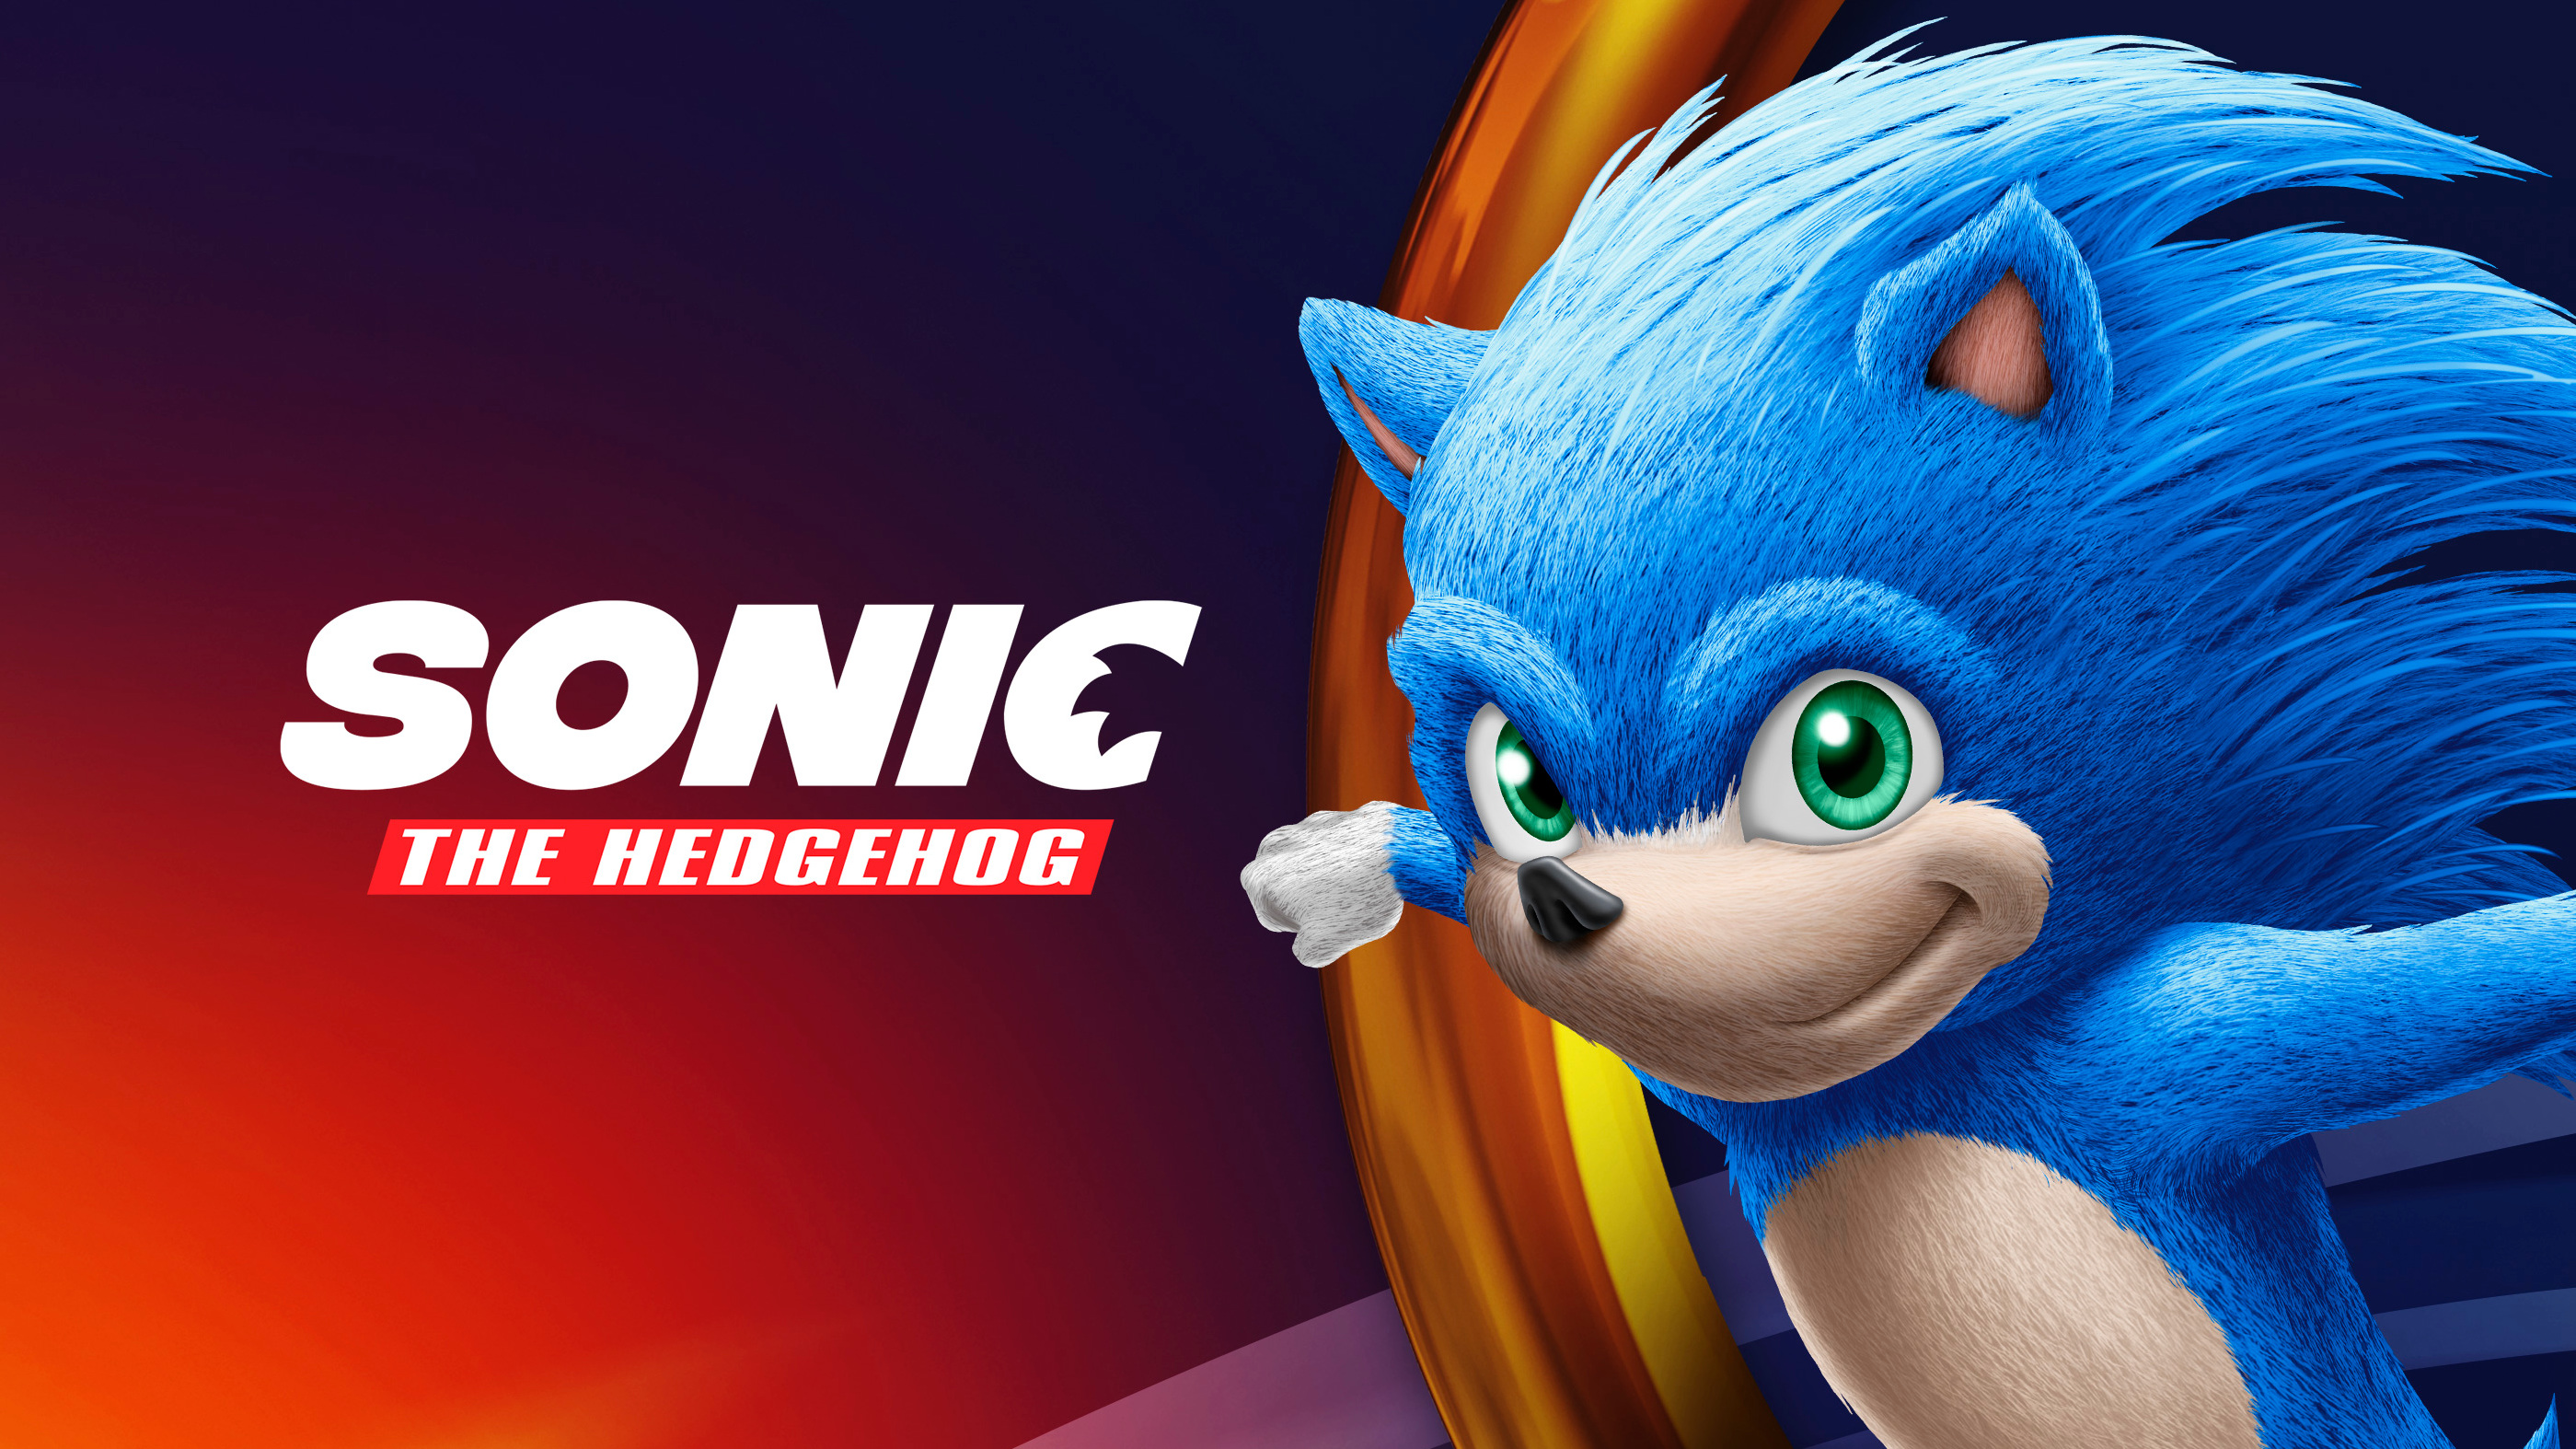 Sonic The Hedgehog: ecco la possibile versione cinematografica thumbnail